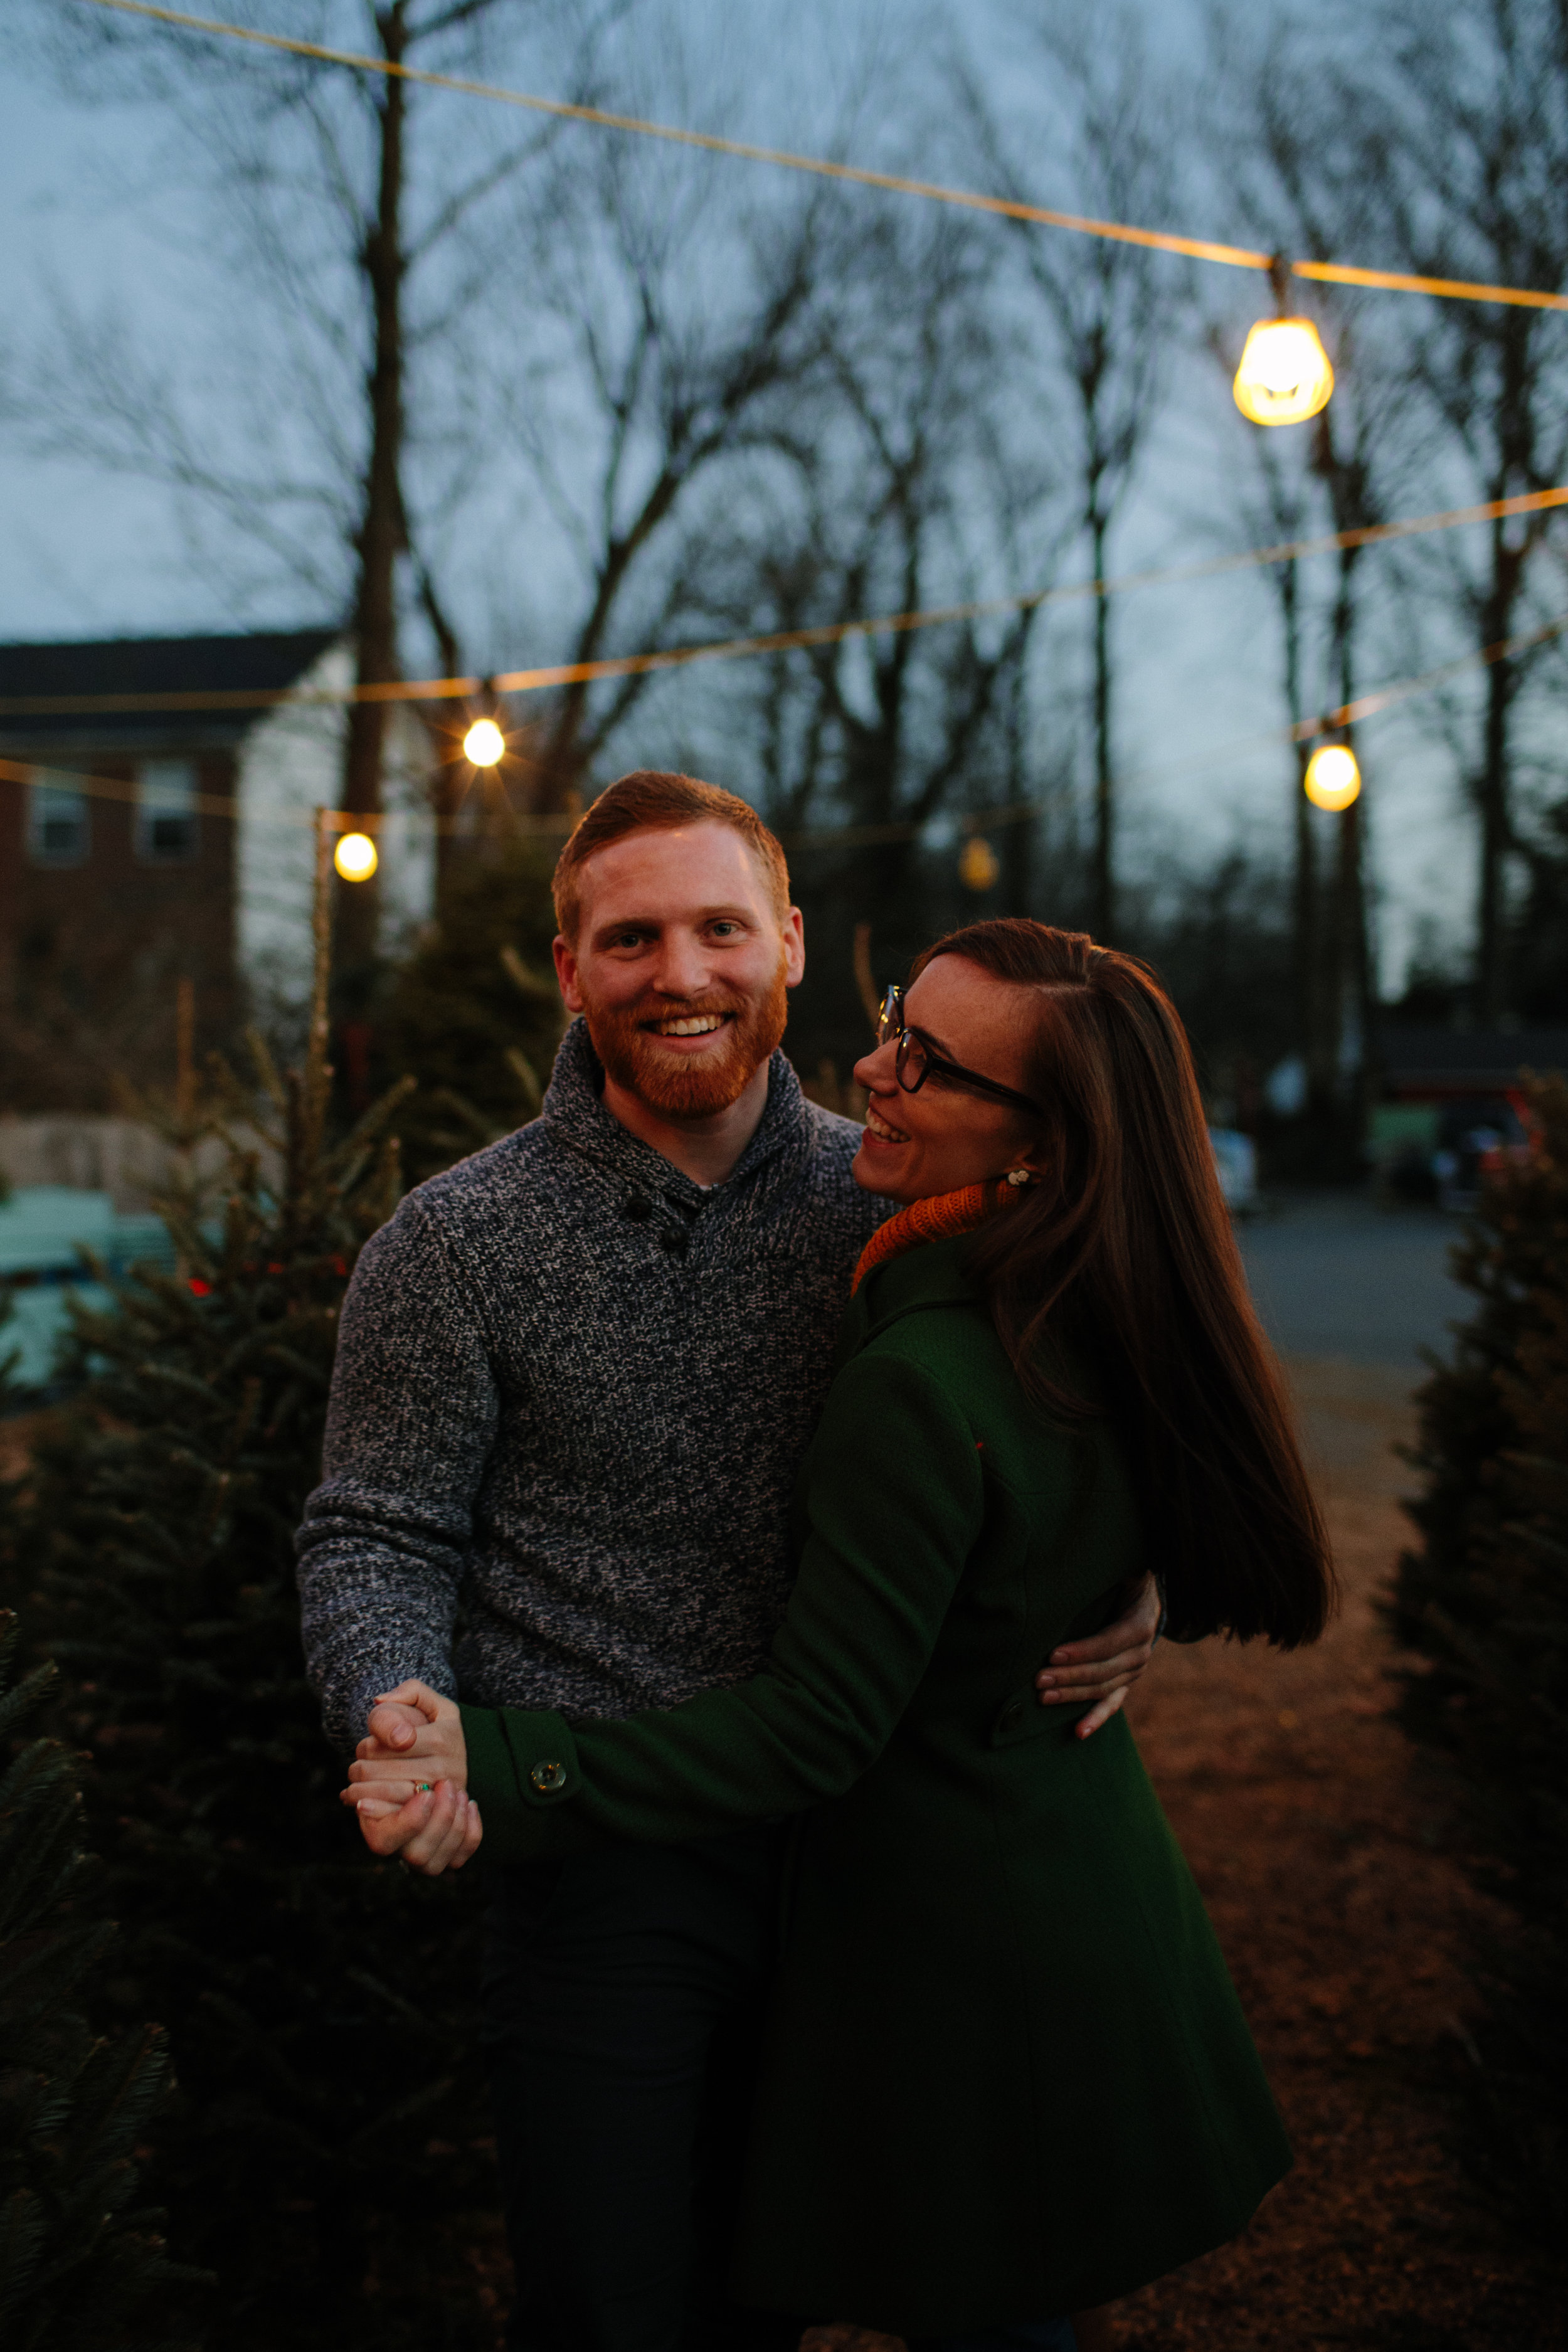 emily+james-christmastreefarm-10.jpg